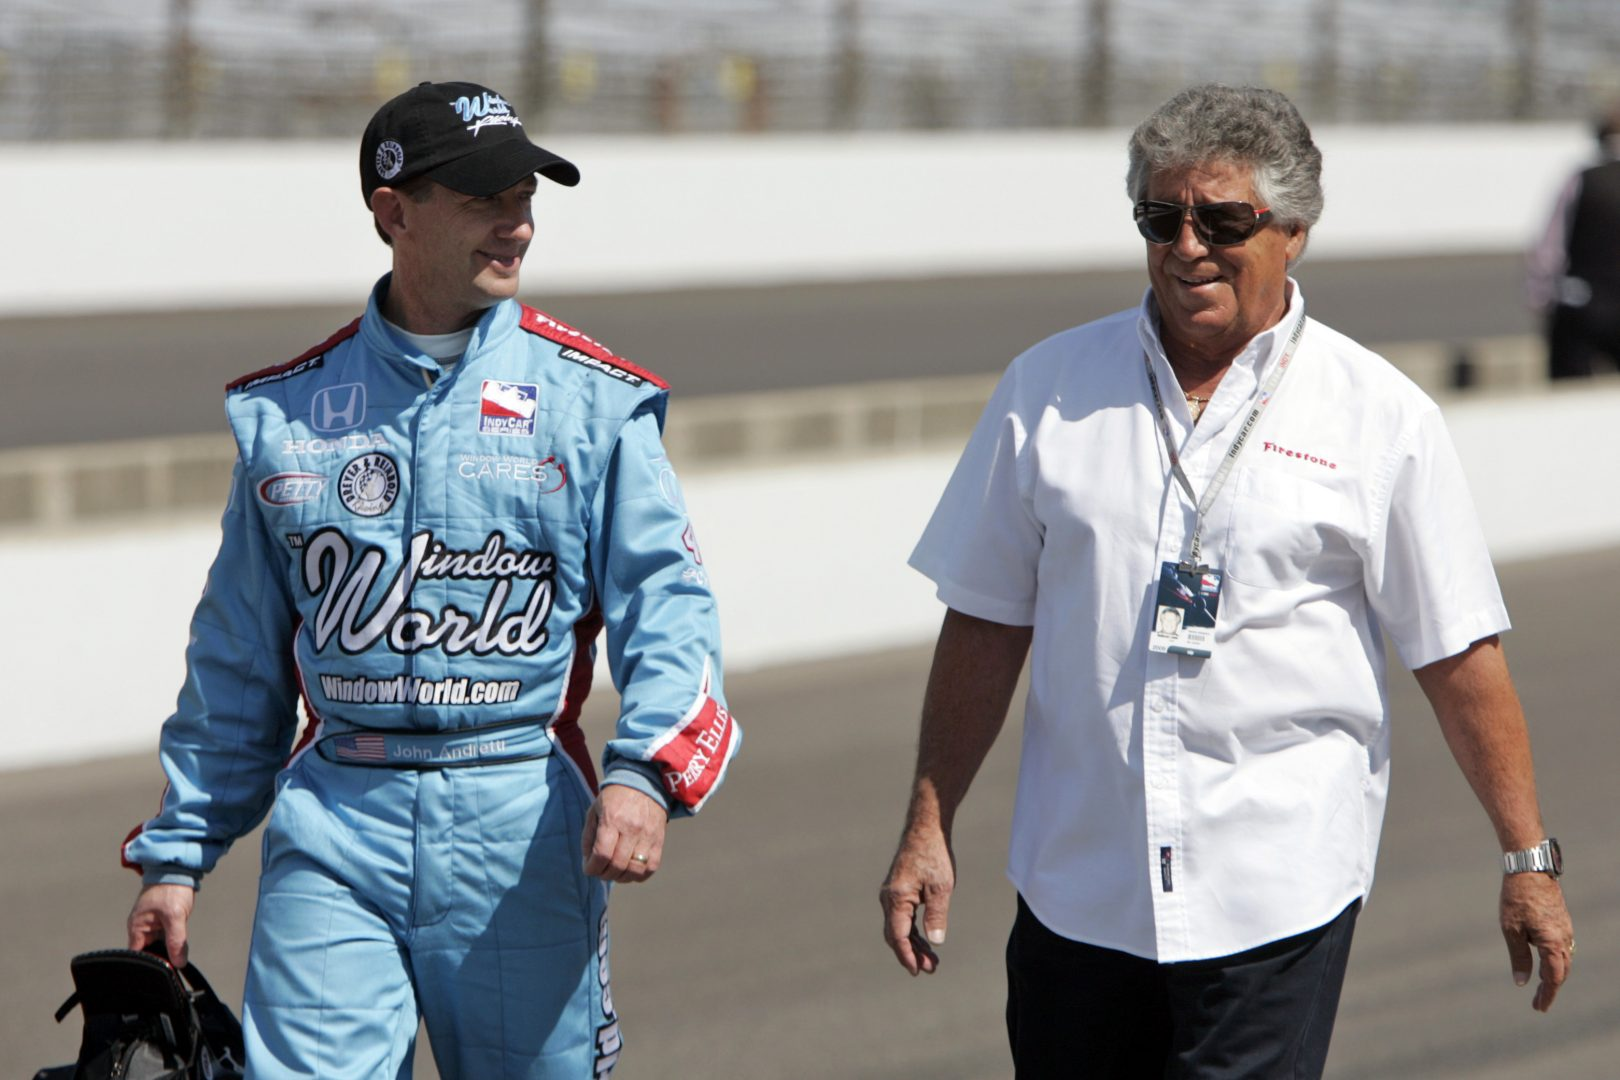 Mario Andretti navigates personal loss, loneliness of pandemic | WITF